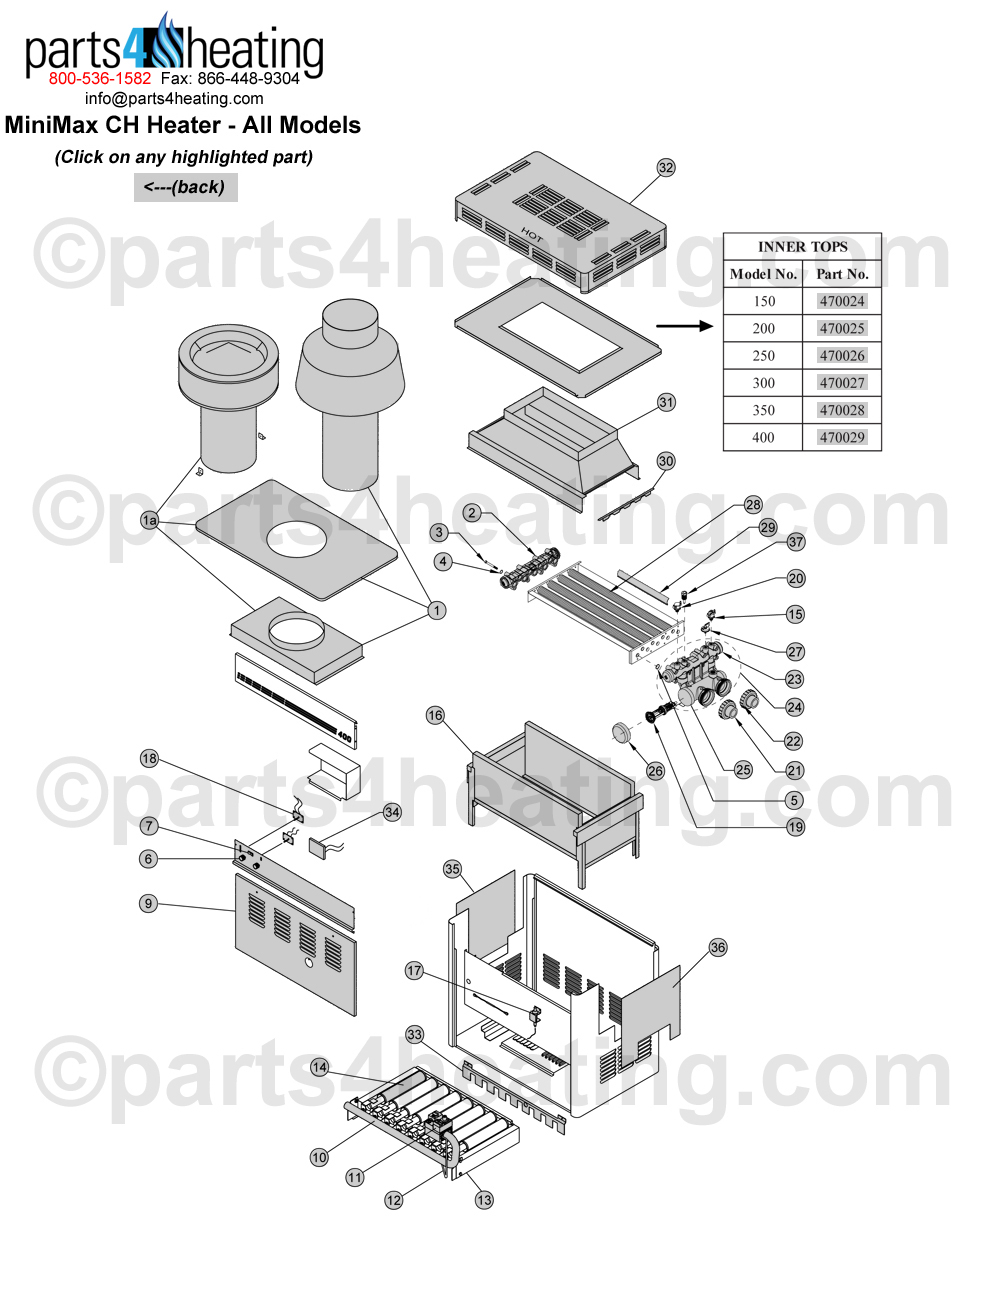 pentair minimax wiring diagrams